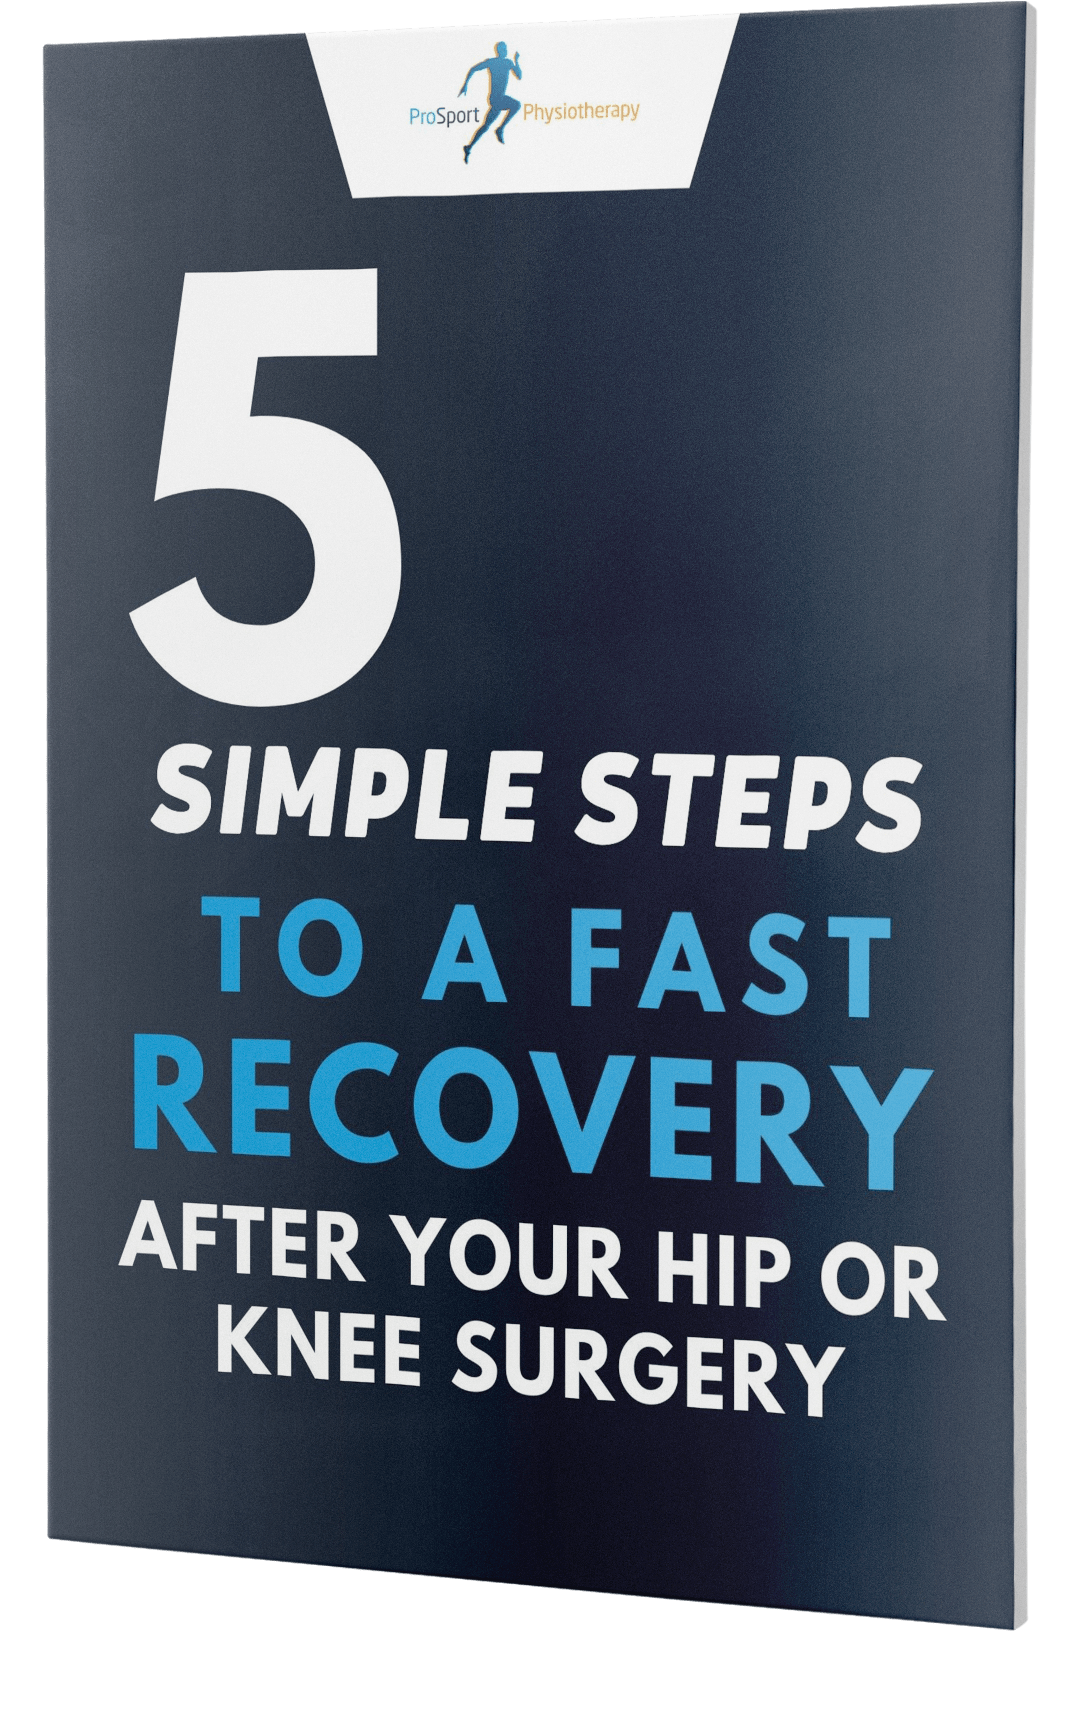 5 steps to recovery afeter